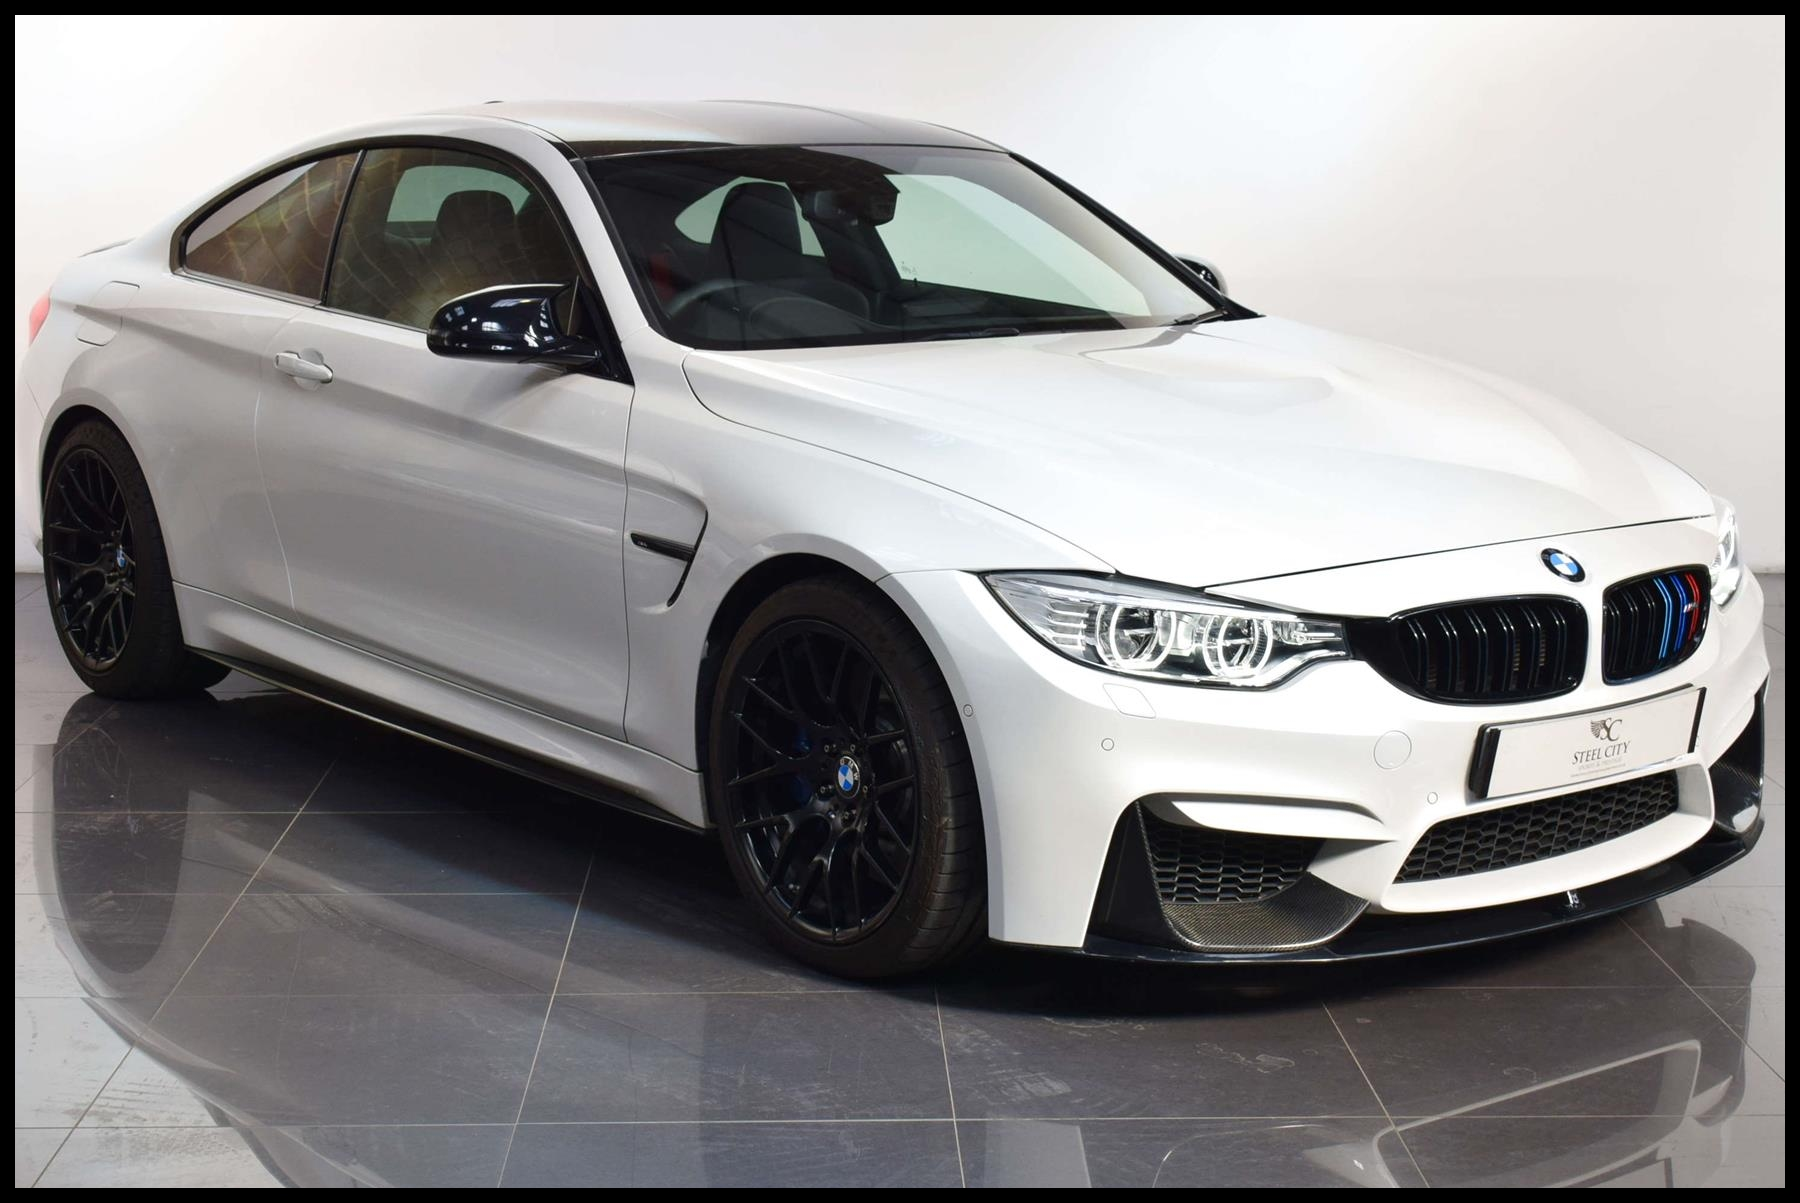 BMW M4 3 0 DCT S A 2014 1 OWNER HEADS UP HK SOUND 2014